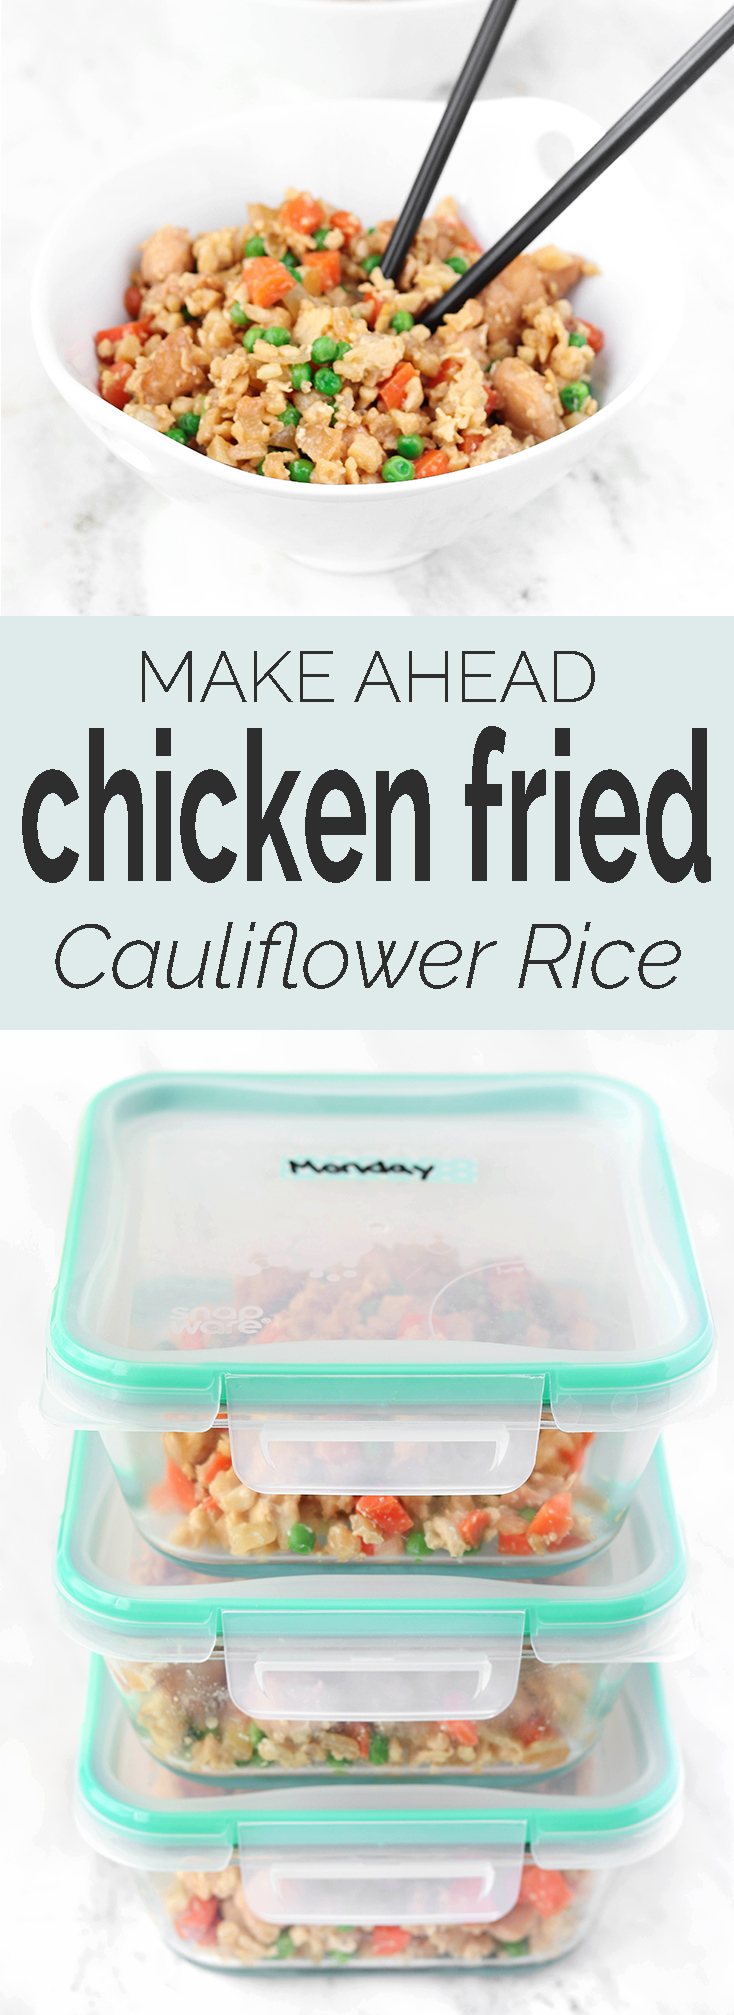 Chicken Fried (CAULIFLOWER) Rice has all the flavor of take-out without any of the carbs, grains, calories or fat. Best part, it comes together in 1 pan and 15 minutes!